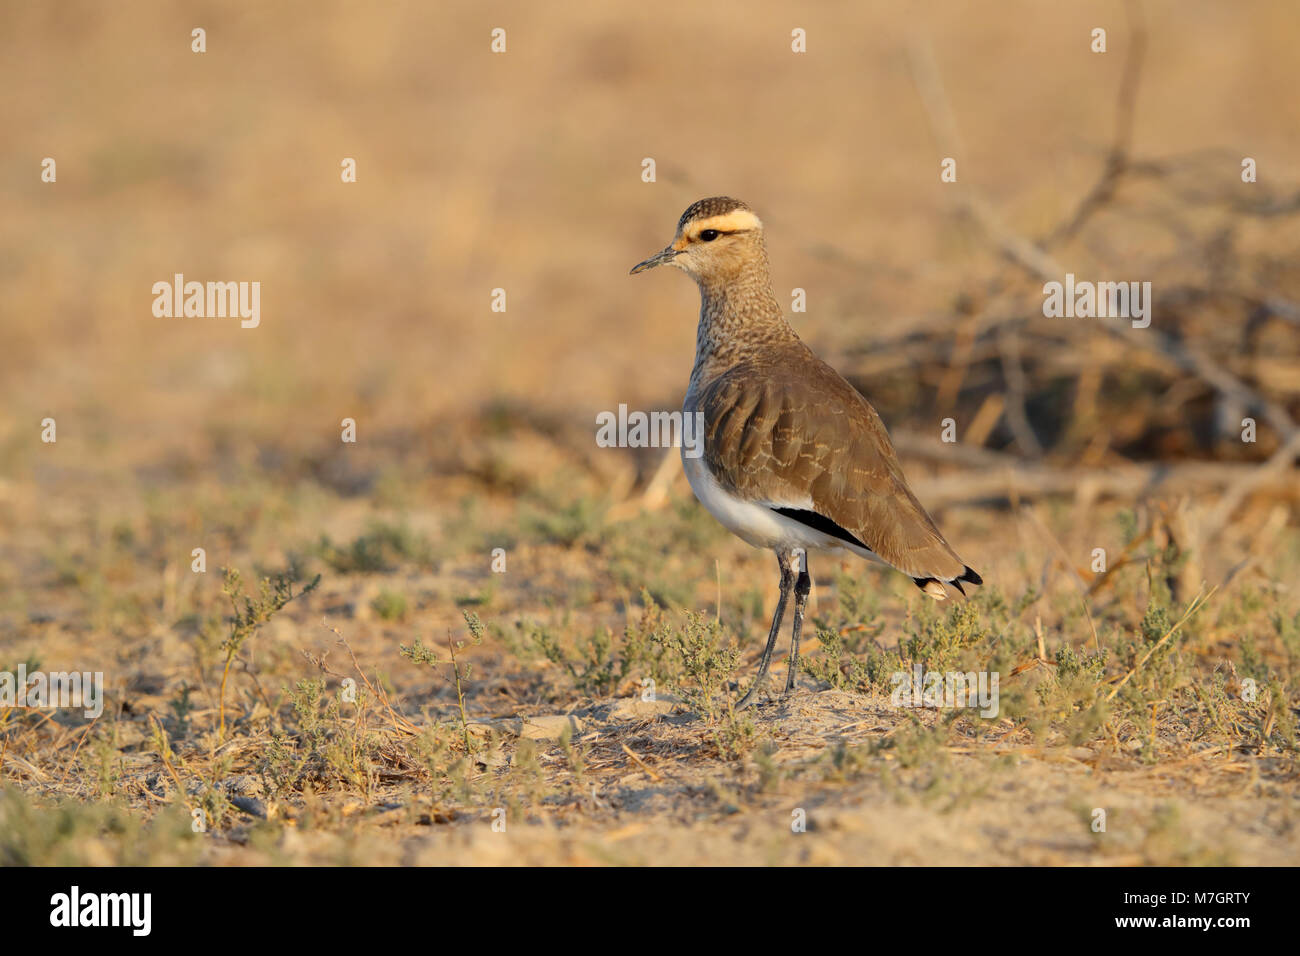 An adult non-breeding plumage Sociable Lapwing or Sociable Plover (Vanellus gregarius) in the Kutch area of Gujarat, - Stock Image